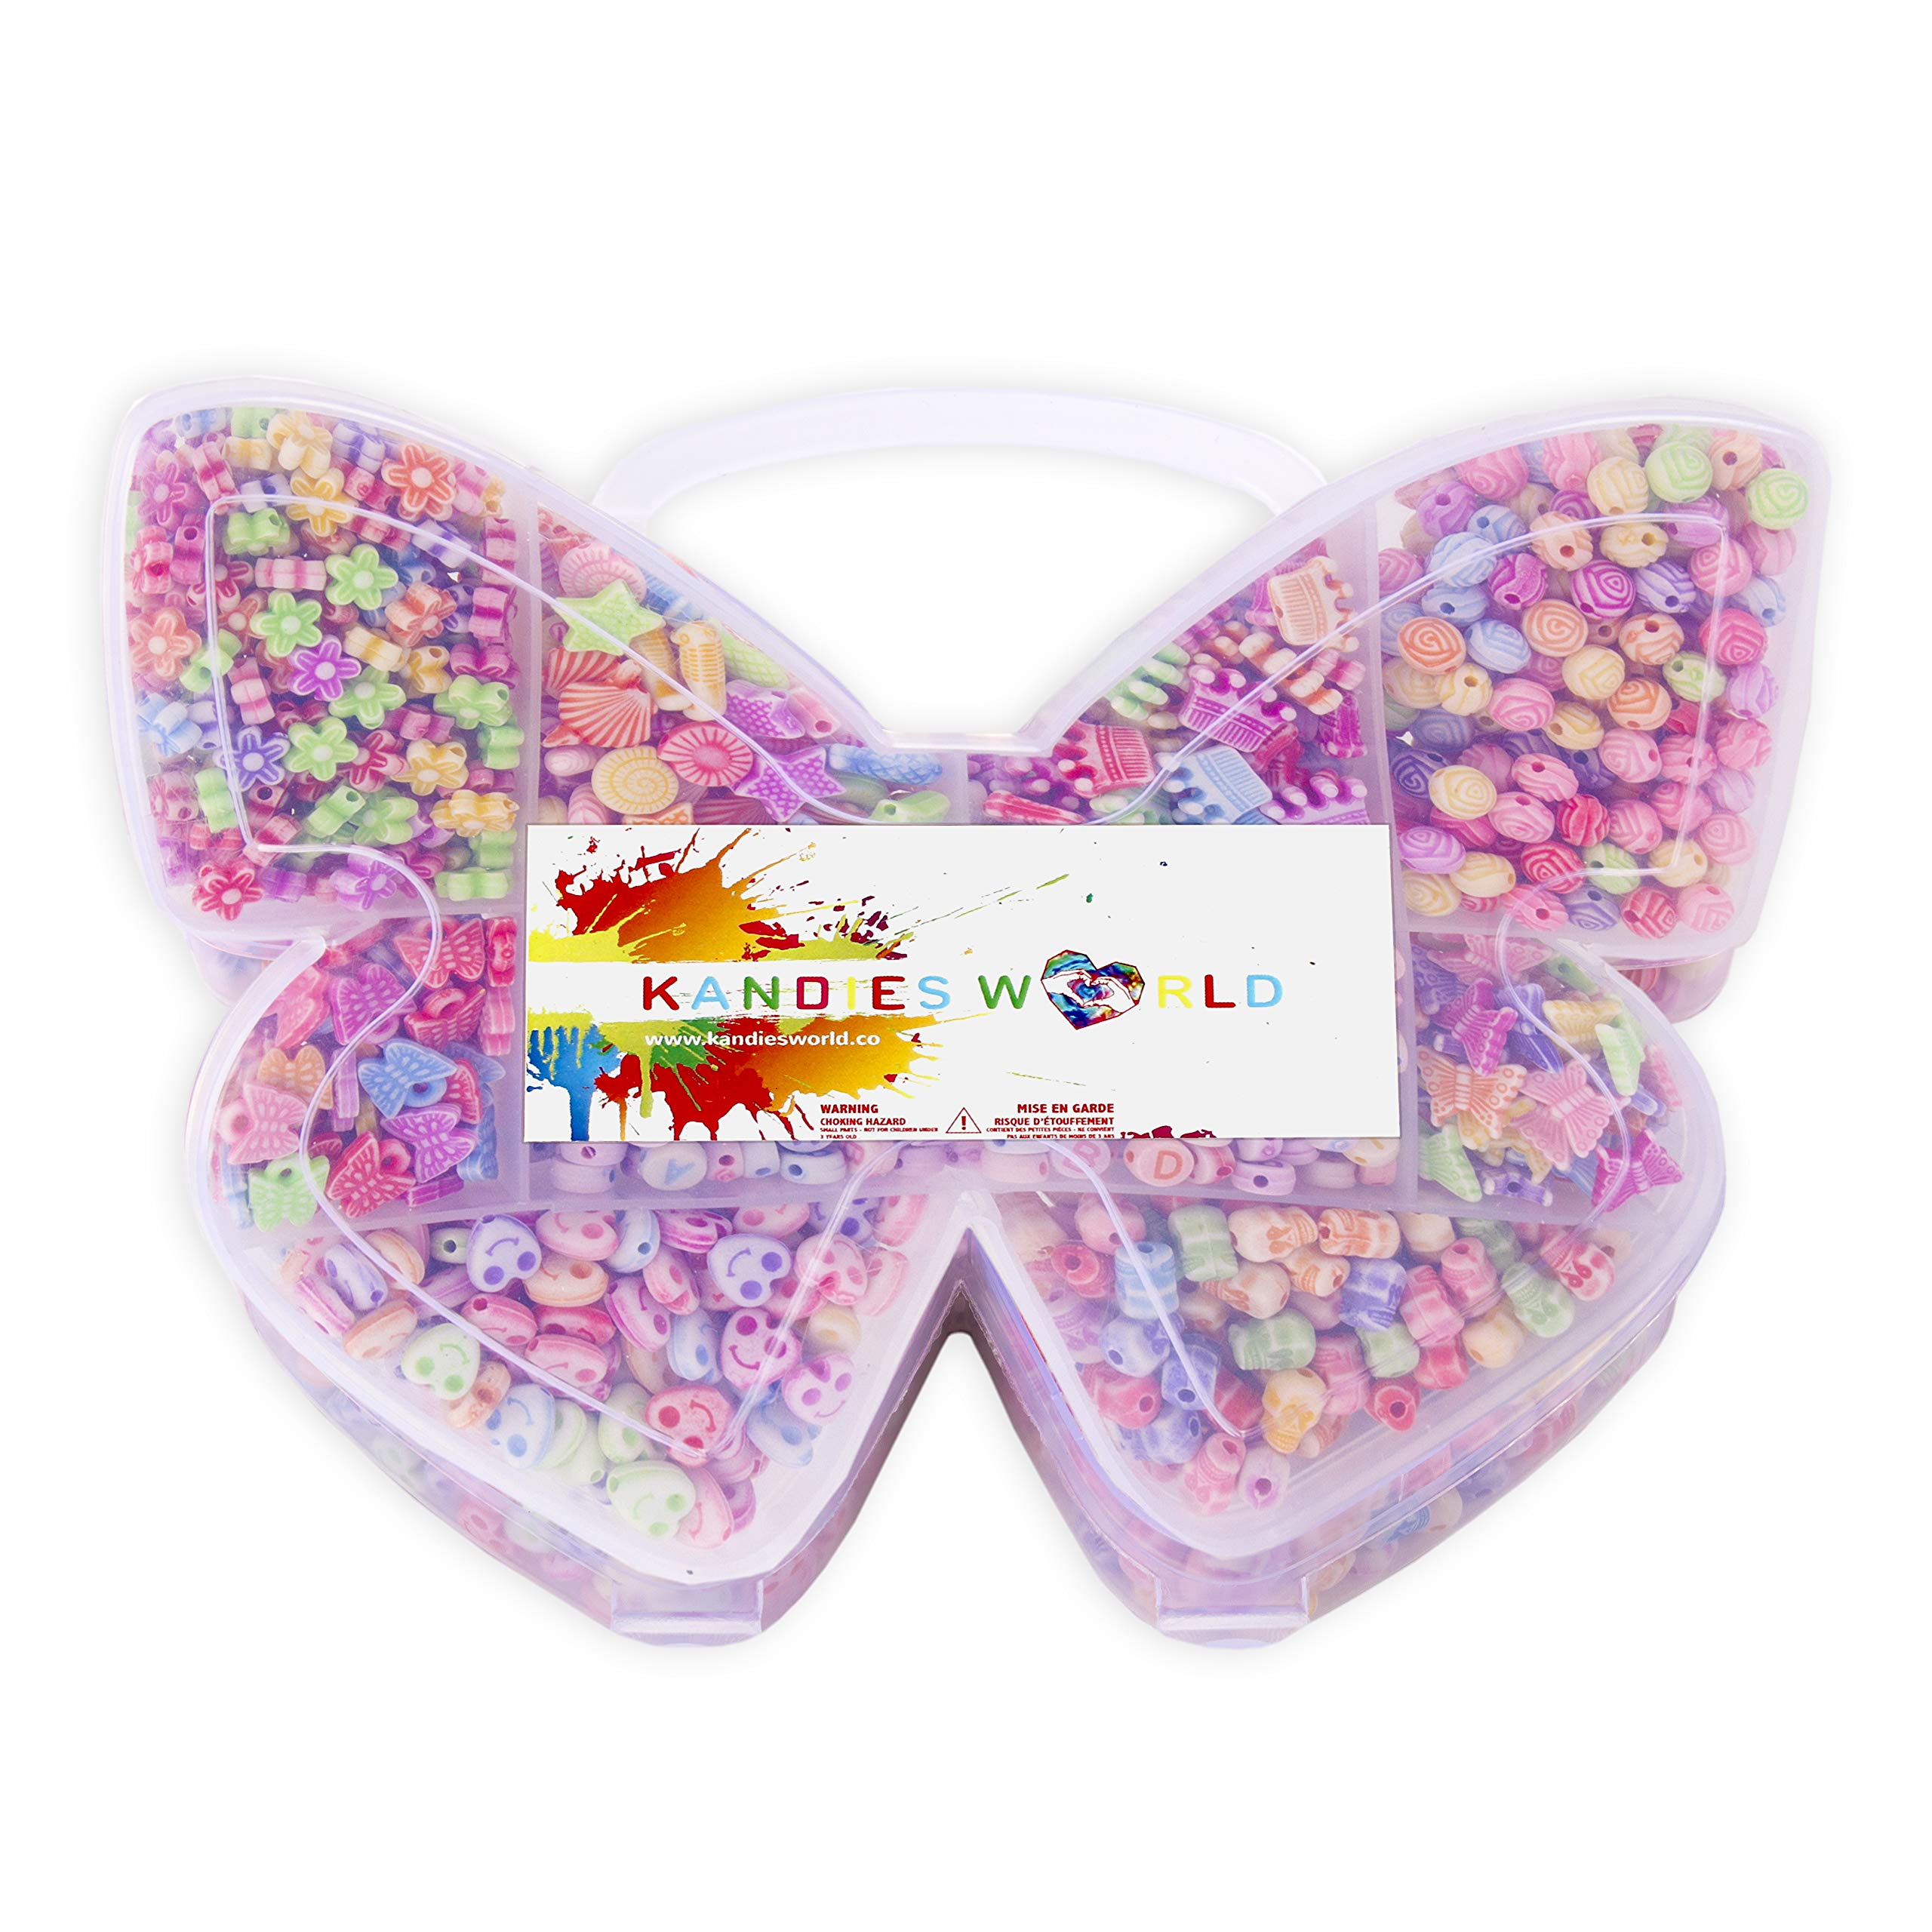 Kandies World | Bead Making Kit | Nine Assorted Shapes & Styles Pastel Color | 1000pcs by Kandies World